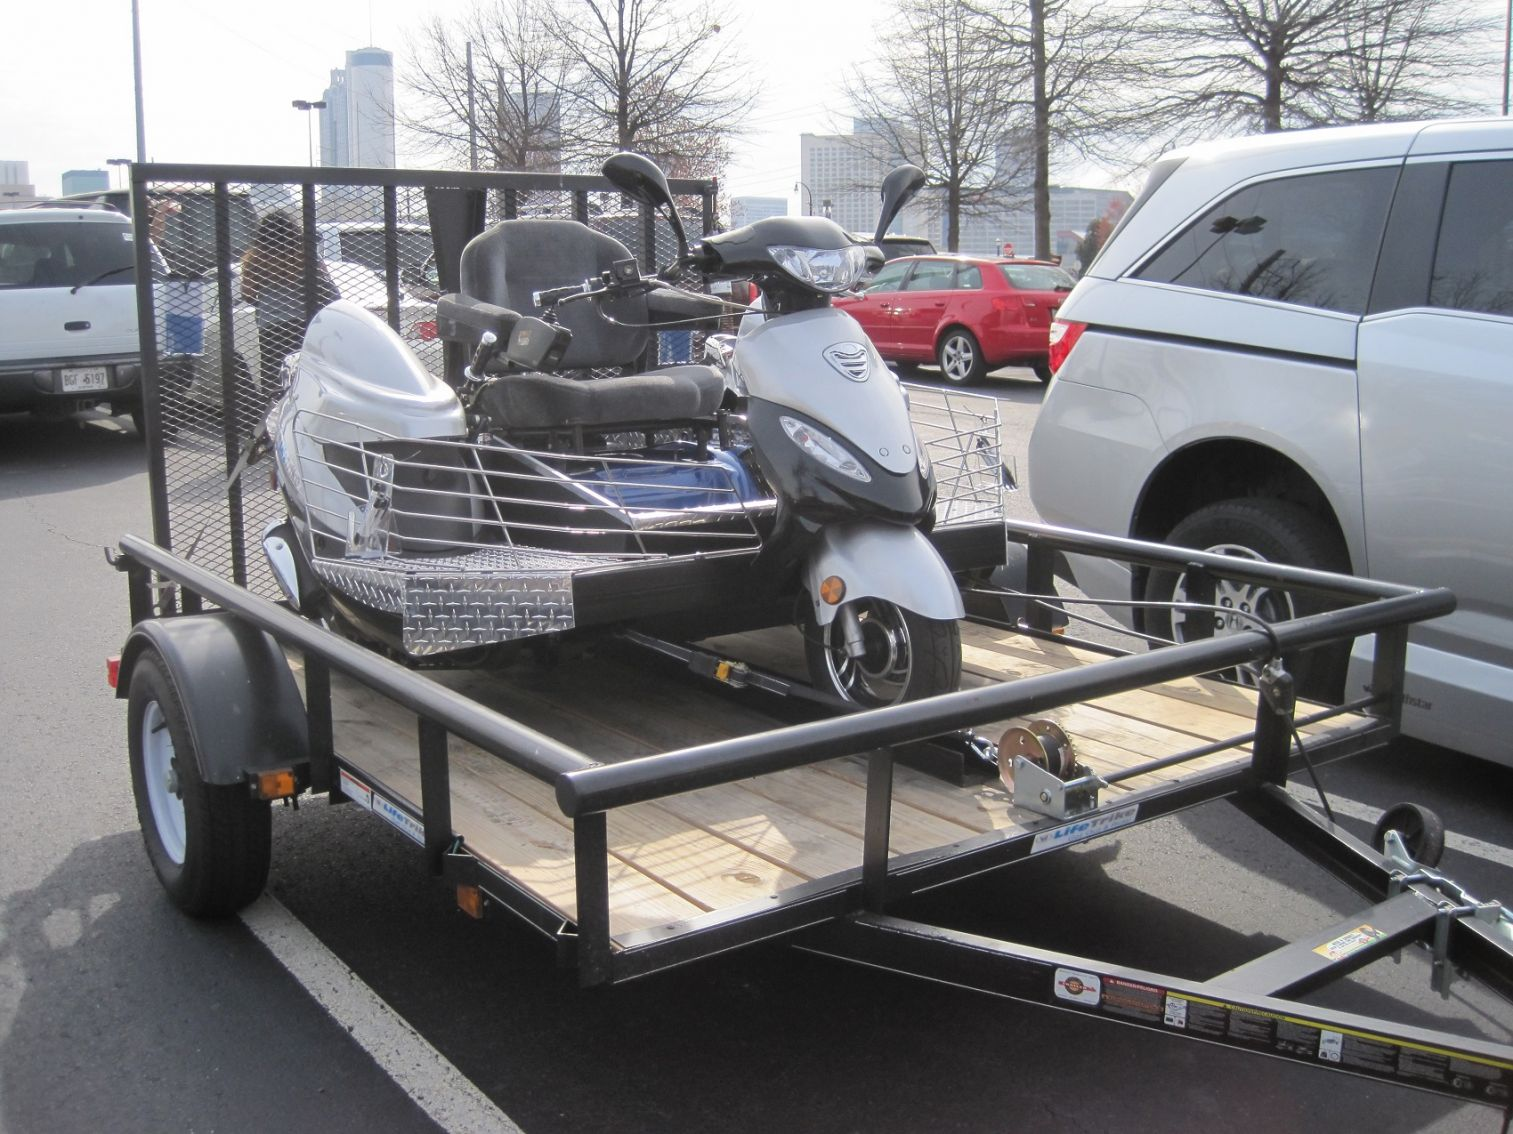 LifeTrike with trailer